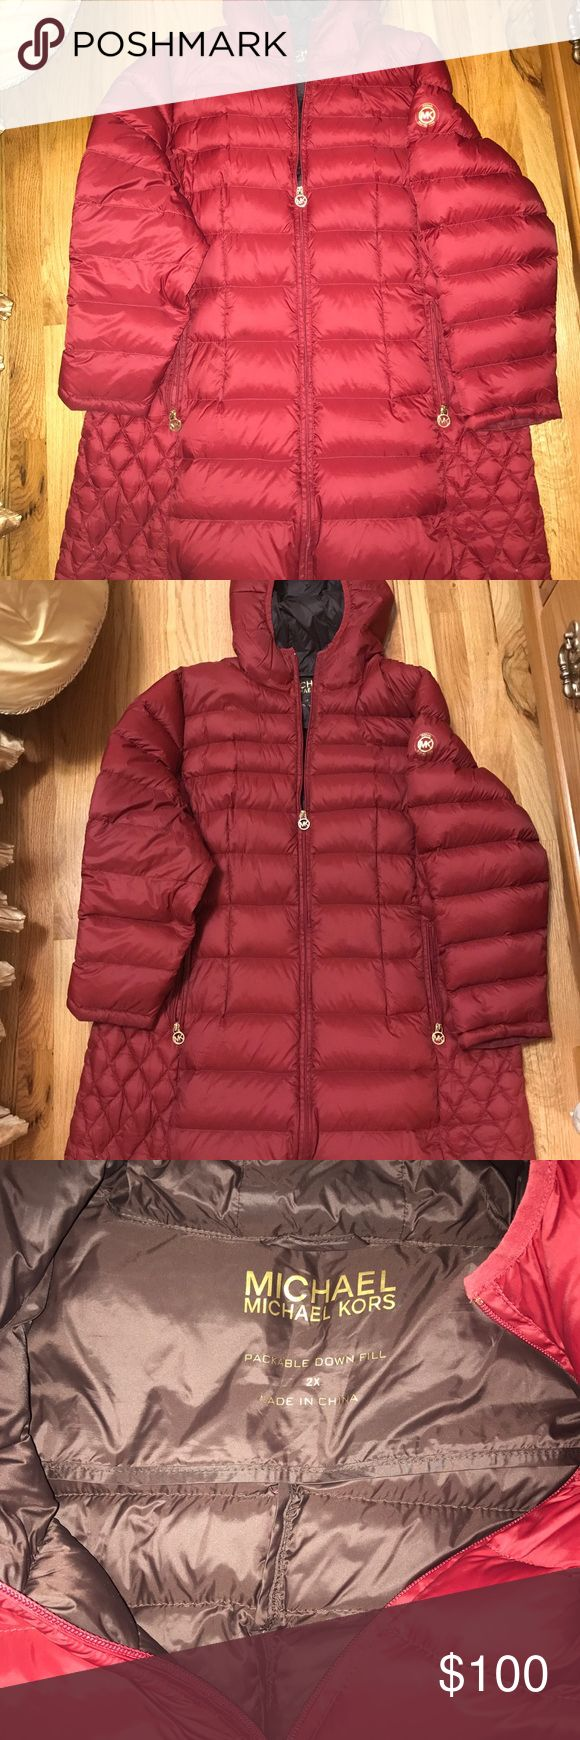 Michael Kors puffer coat with gold accent Worn once. In great condition KORS Michael Kors Jackets & Coats Puffers